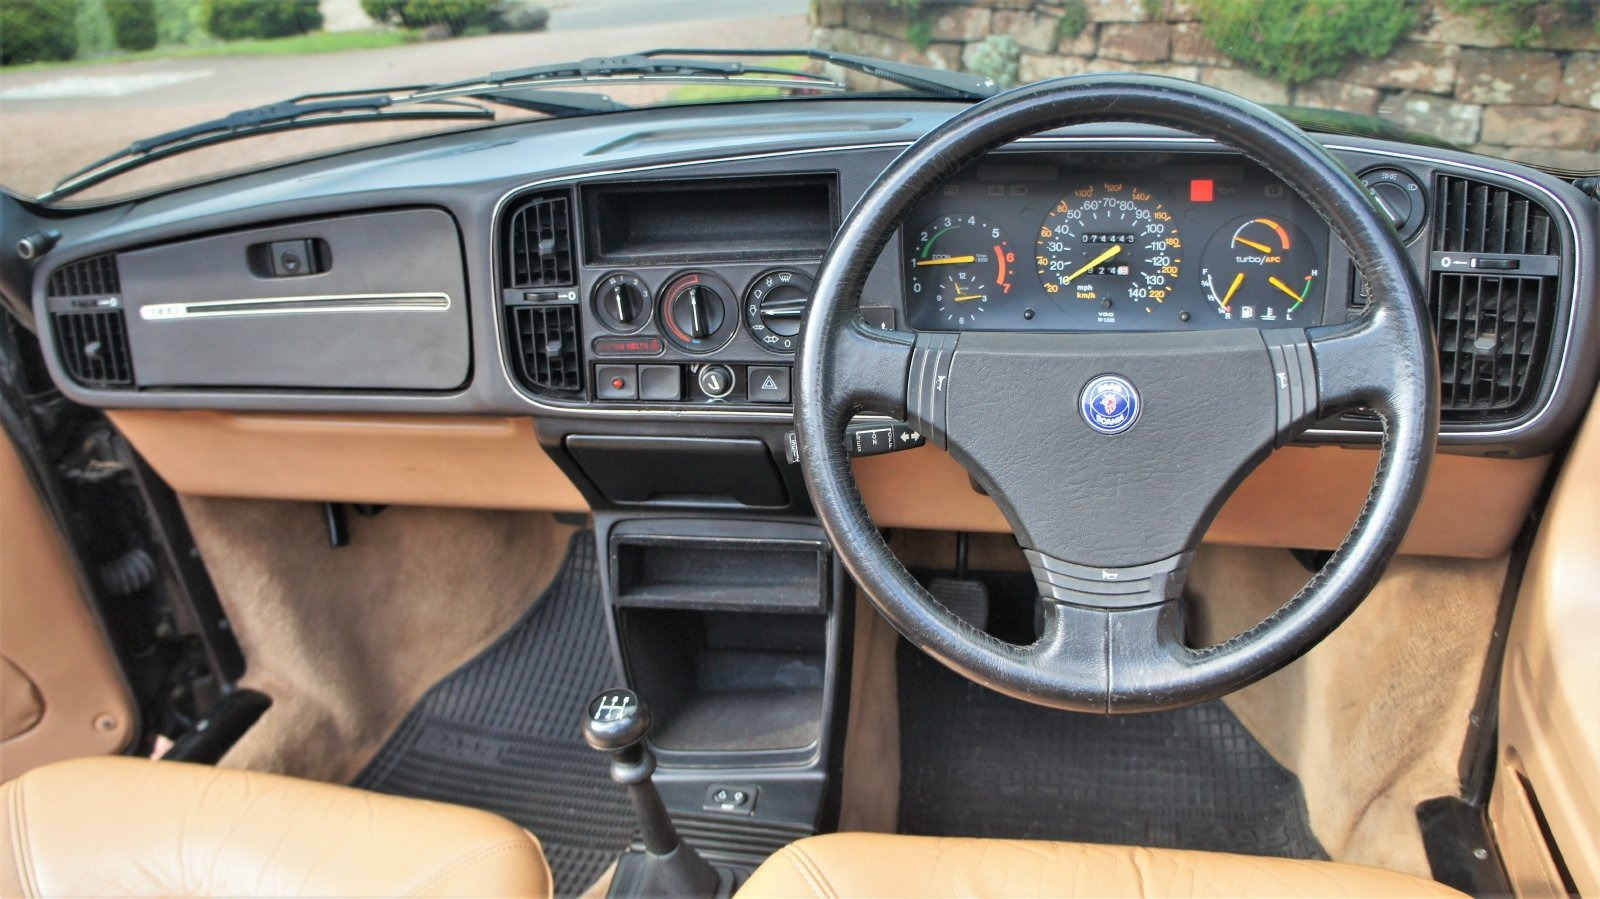 1987 SAAB 900 16 VALVE TURBO CONVERTIBLE - 74000 MILES For Sale (picture 6 of 6)